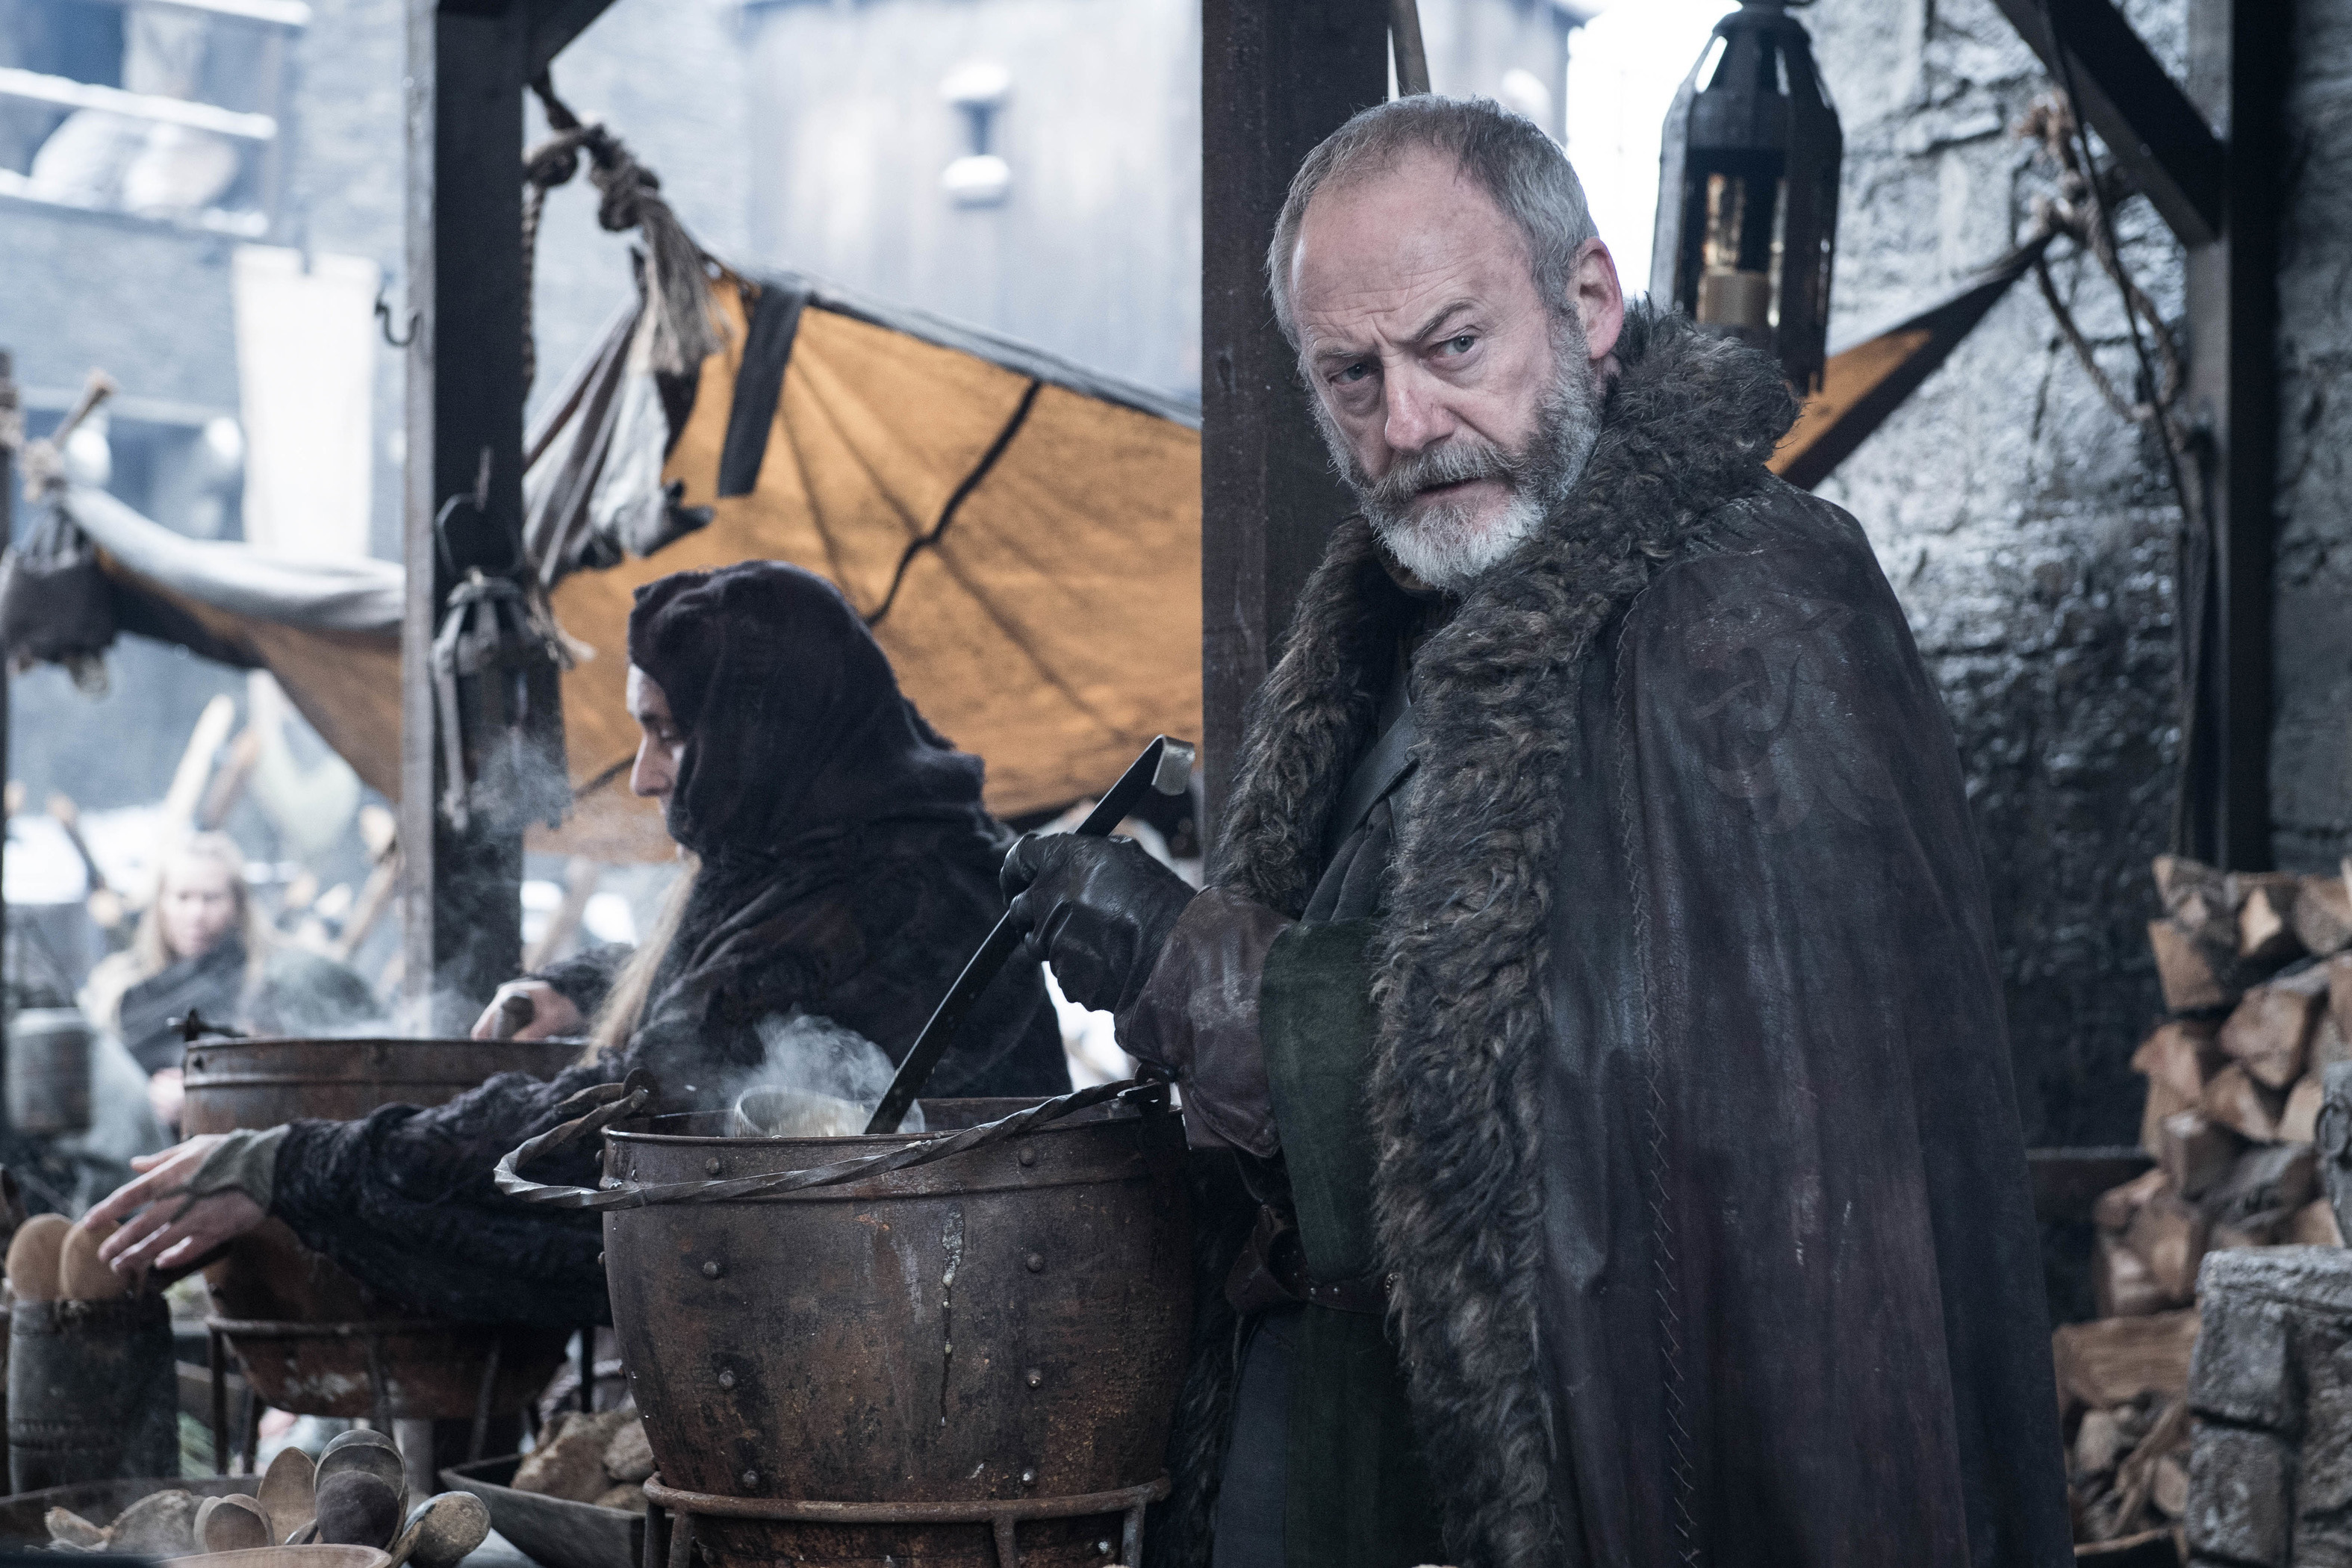 Davos Seaworth, Game of Thrones, HBO